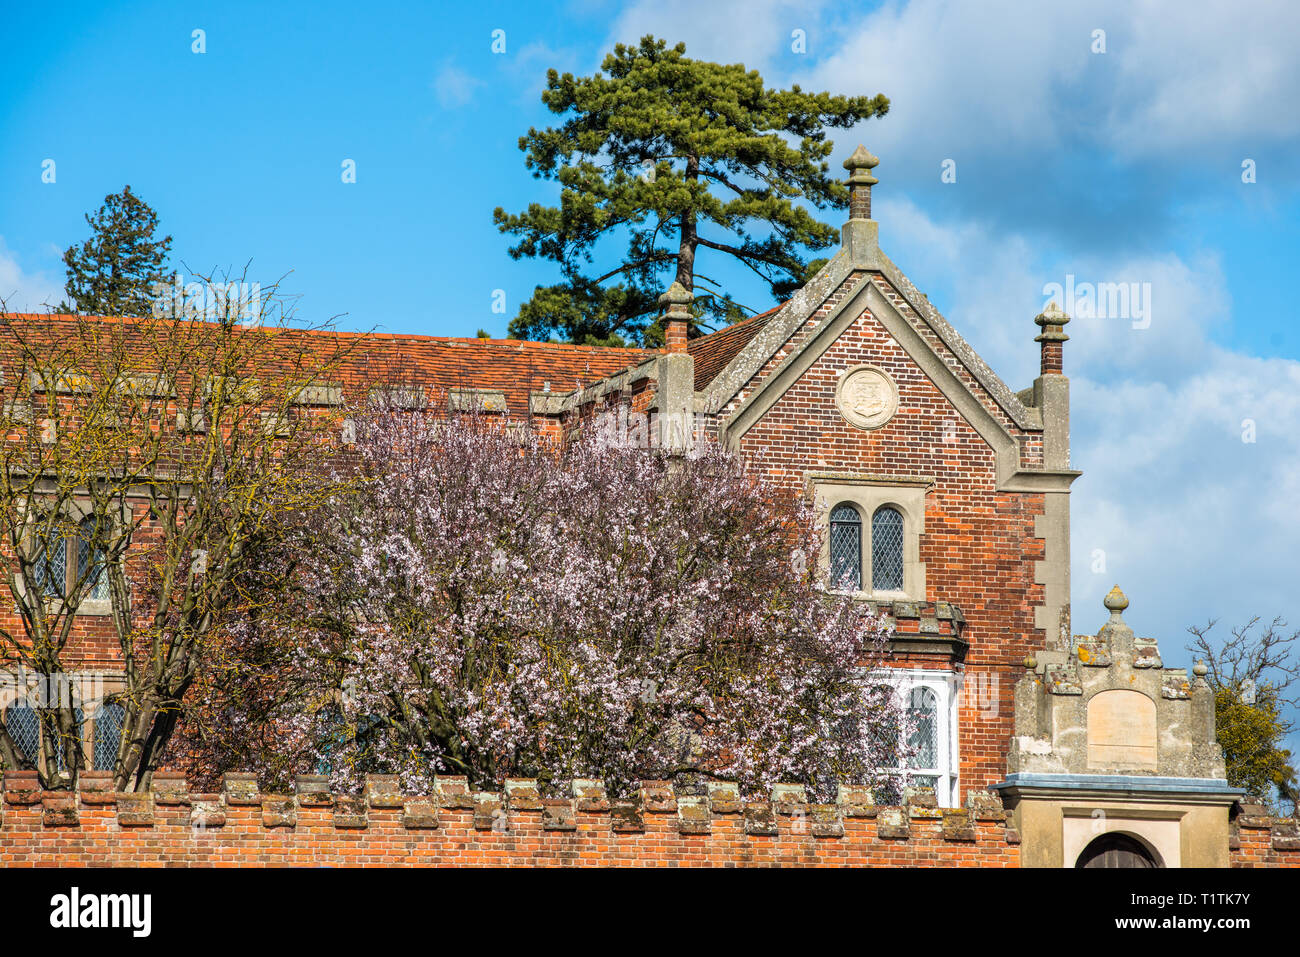 Hospital of the Holy and Blessed Trinity in the village of Long Melford, Suffolk, East Anglia, UK. - Stock Image